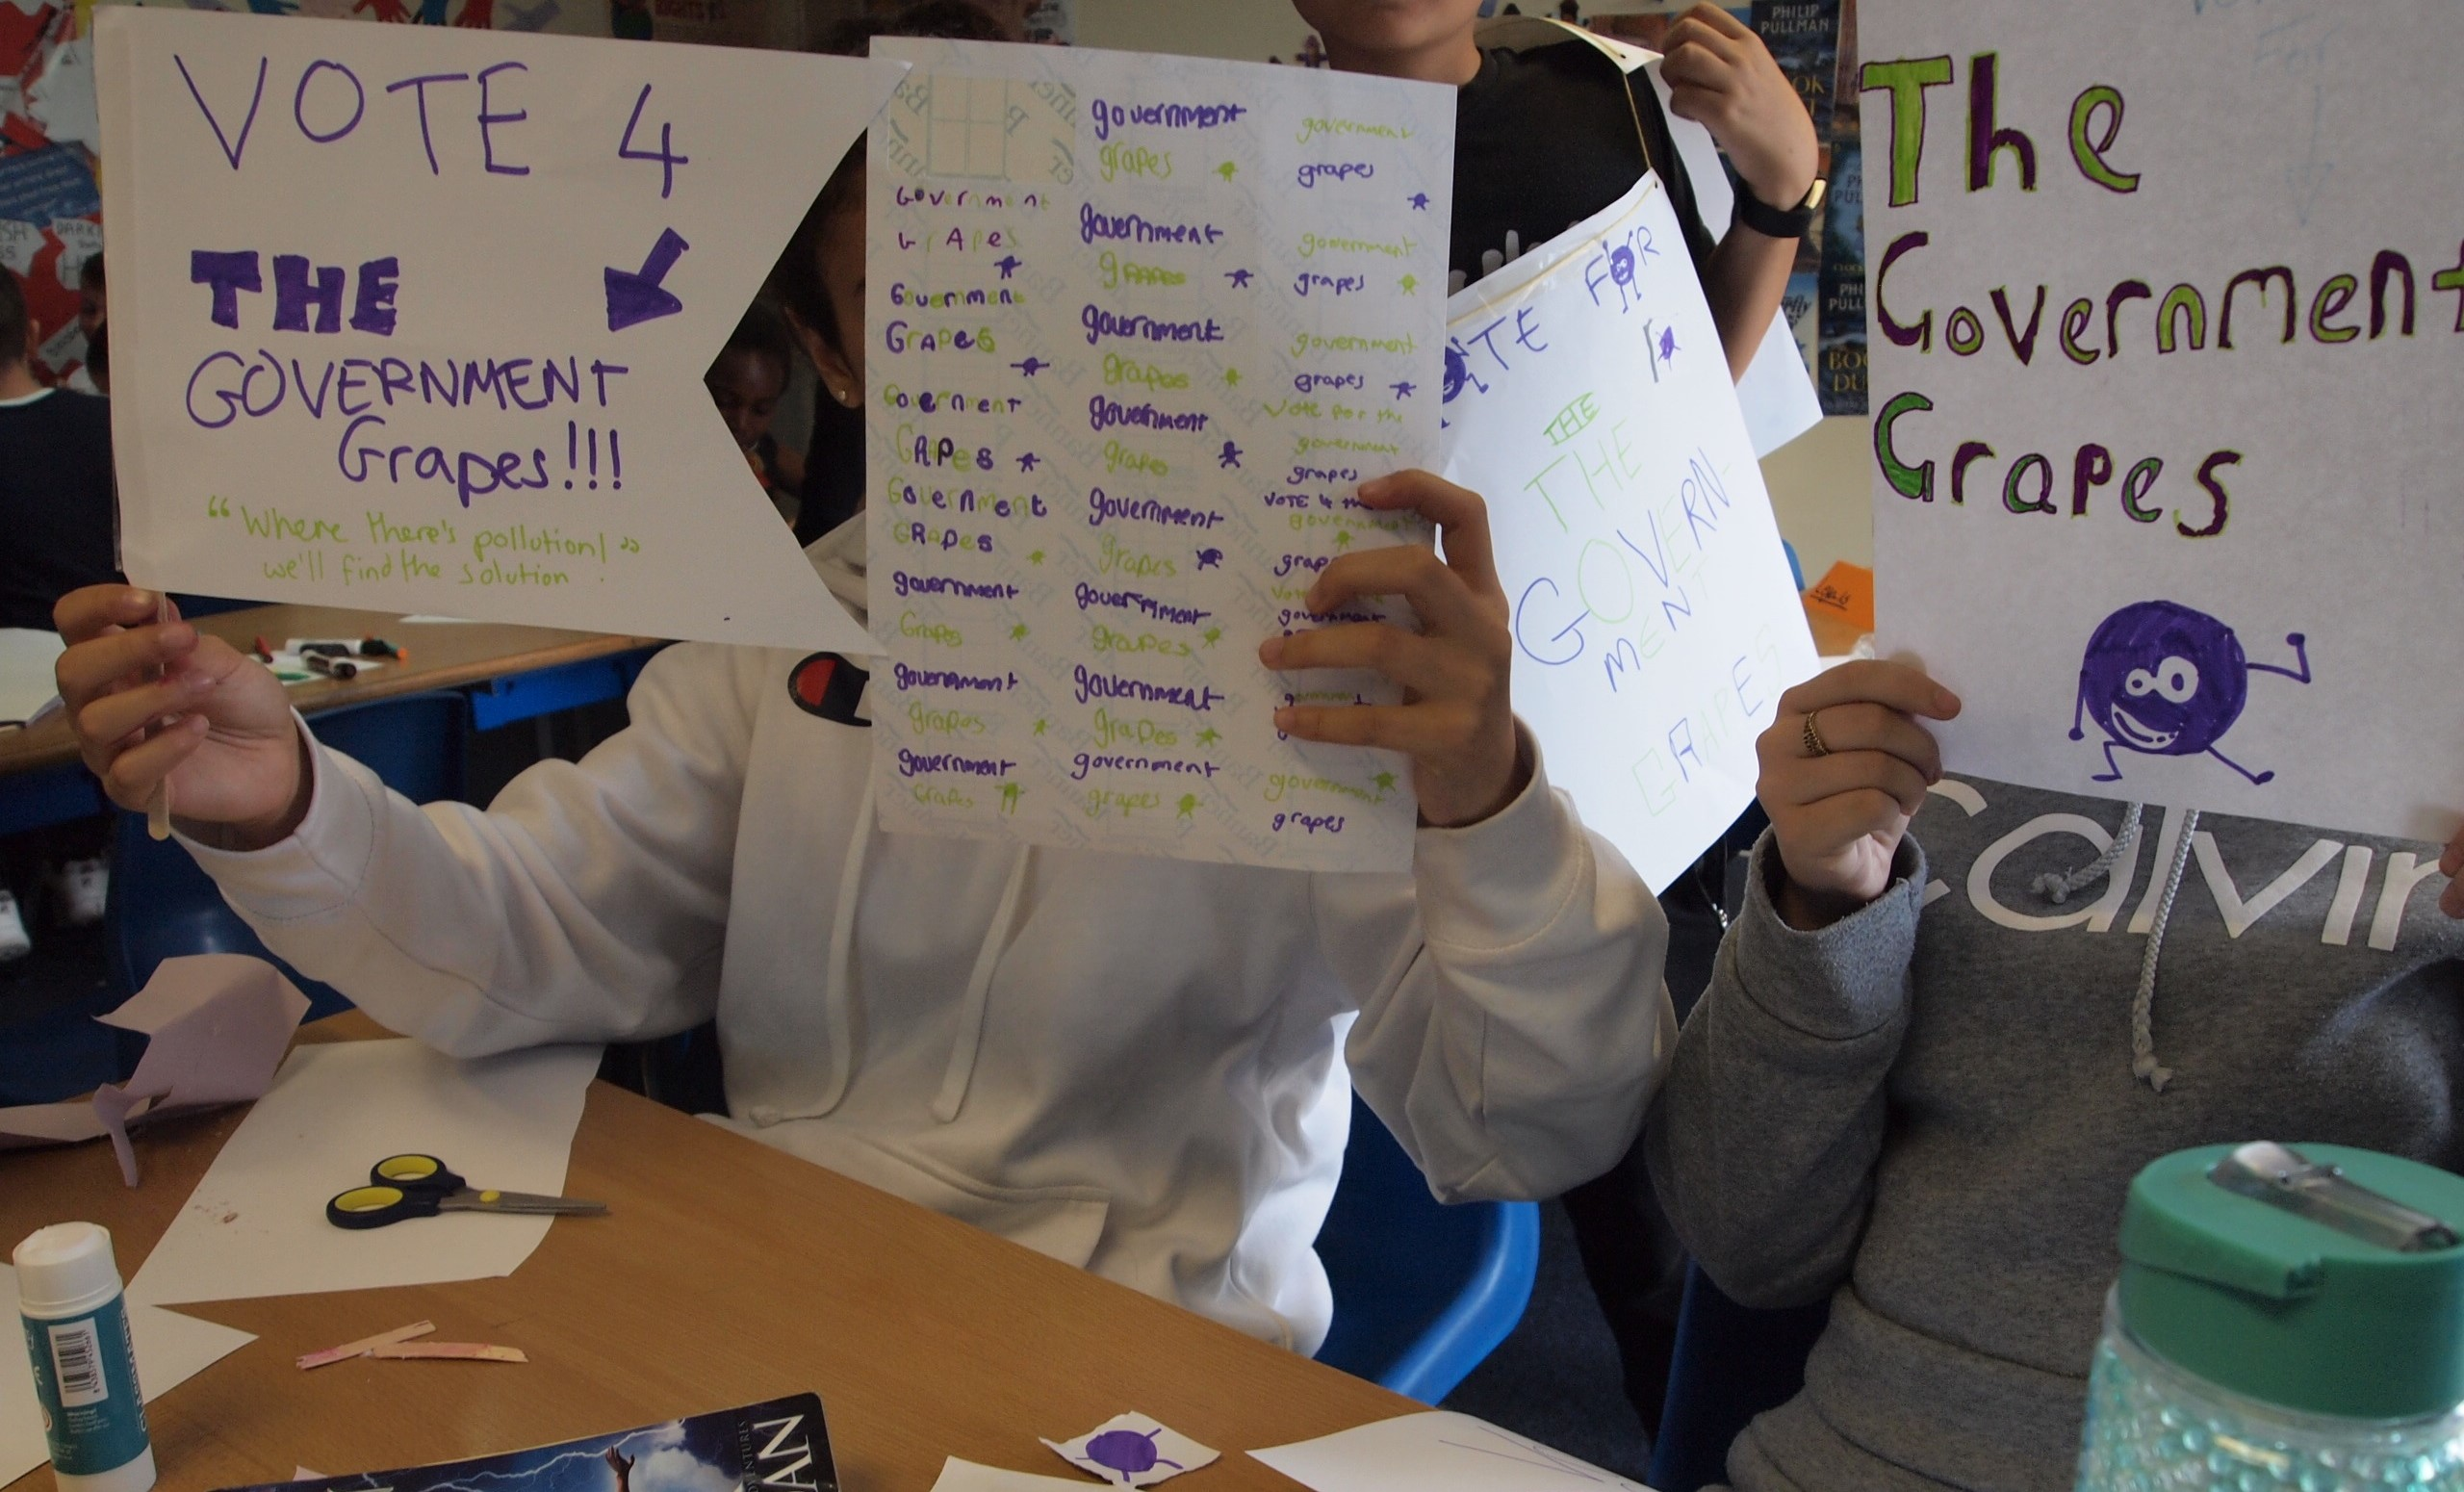 Year 6 learners apply Creativity and Teamwork to put together a colourful set of promotional materials for their political parties